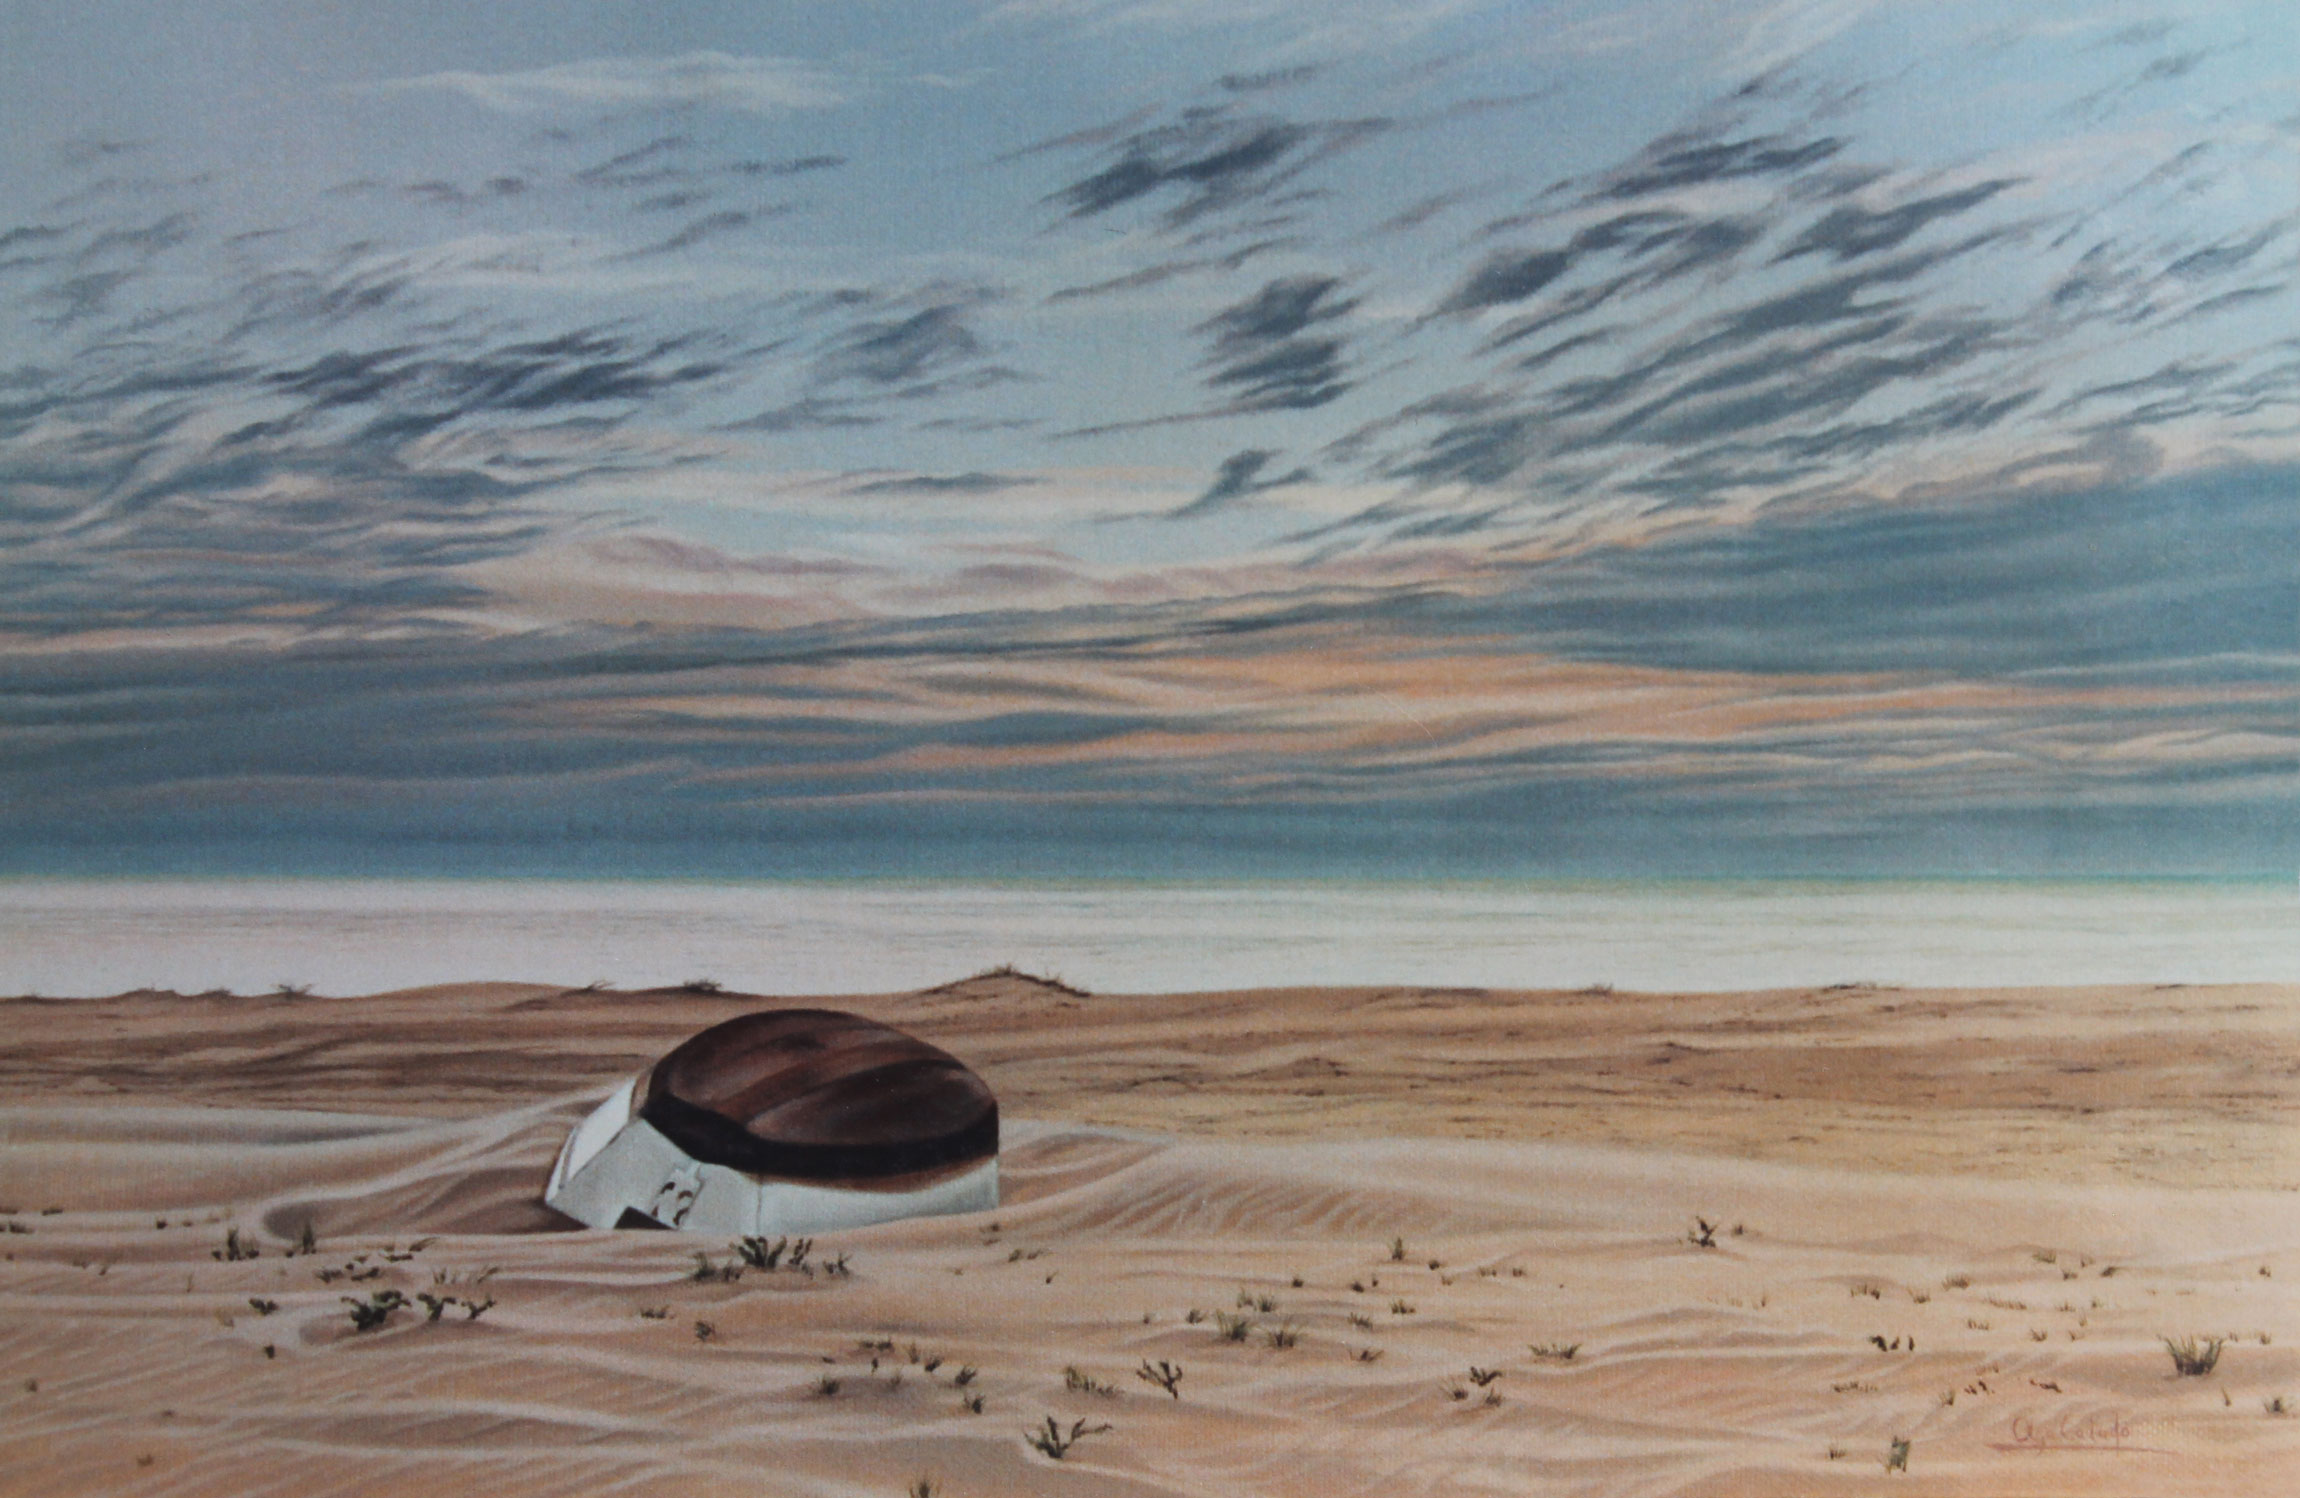 Painting of a boat in the Sand Dunes of the beach in Sanlucar de Barrameda